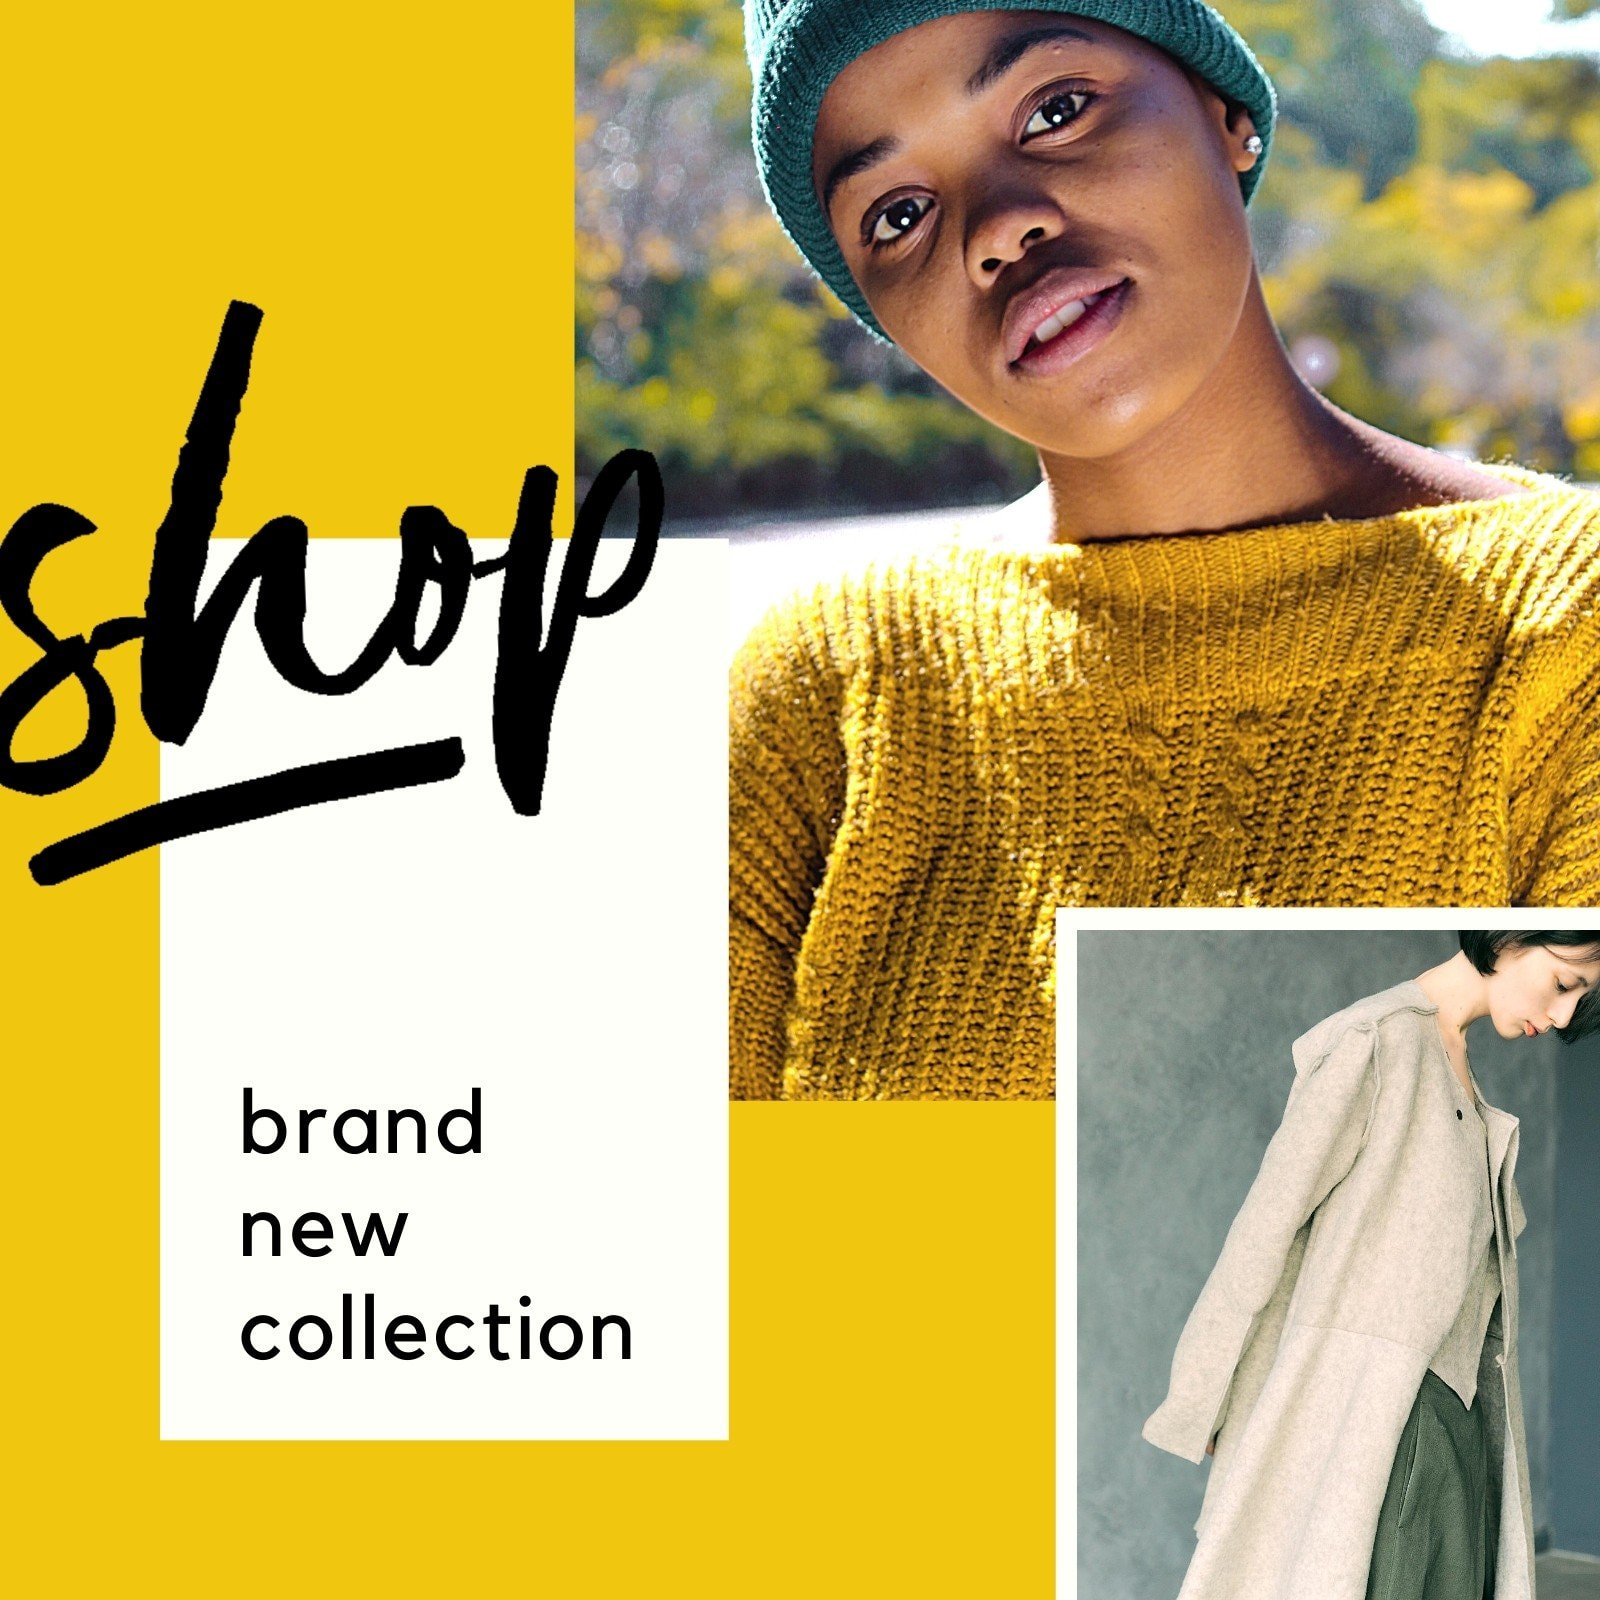 Yellow and Black Fashion Collection Animated Social Media Graphic